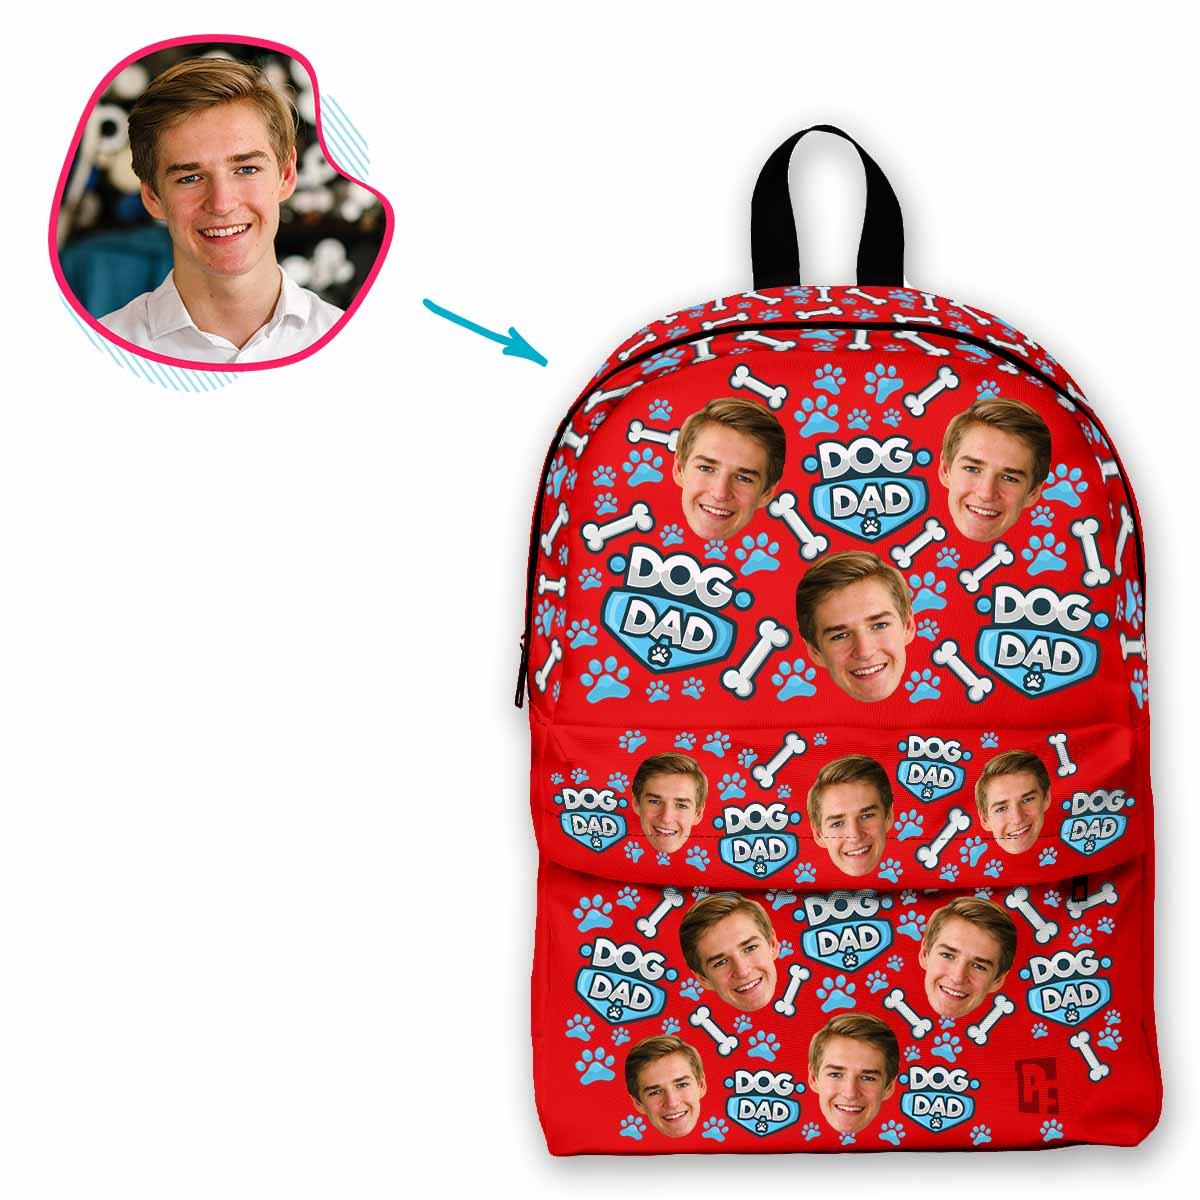 red Dog Dad classic backpack personalized with photo of face printed on it